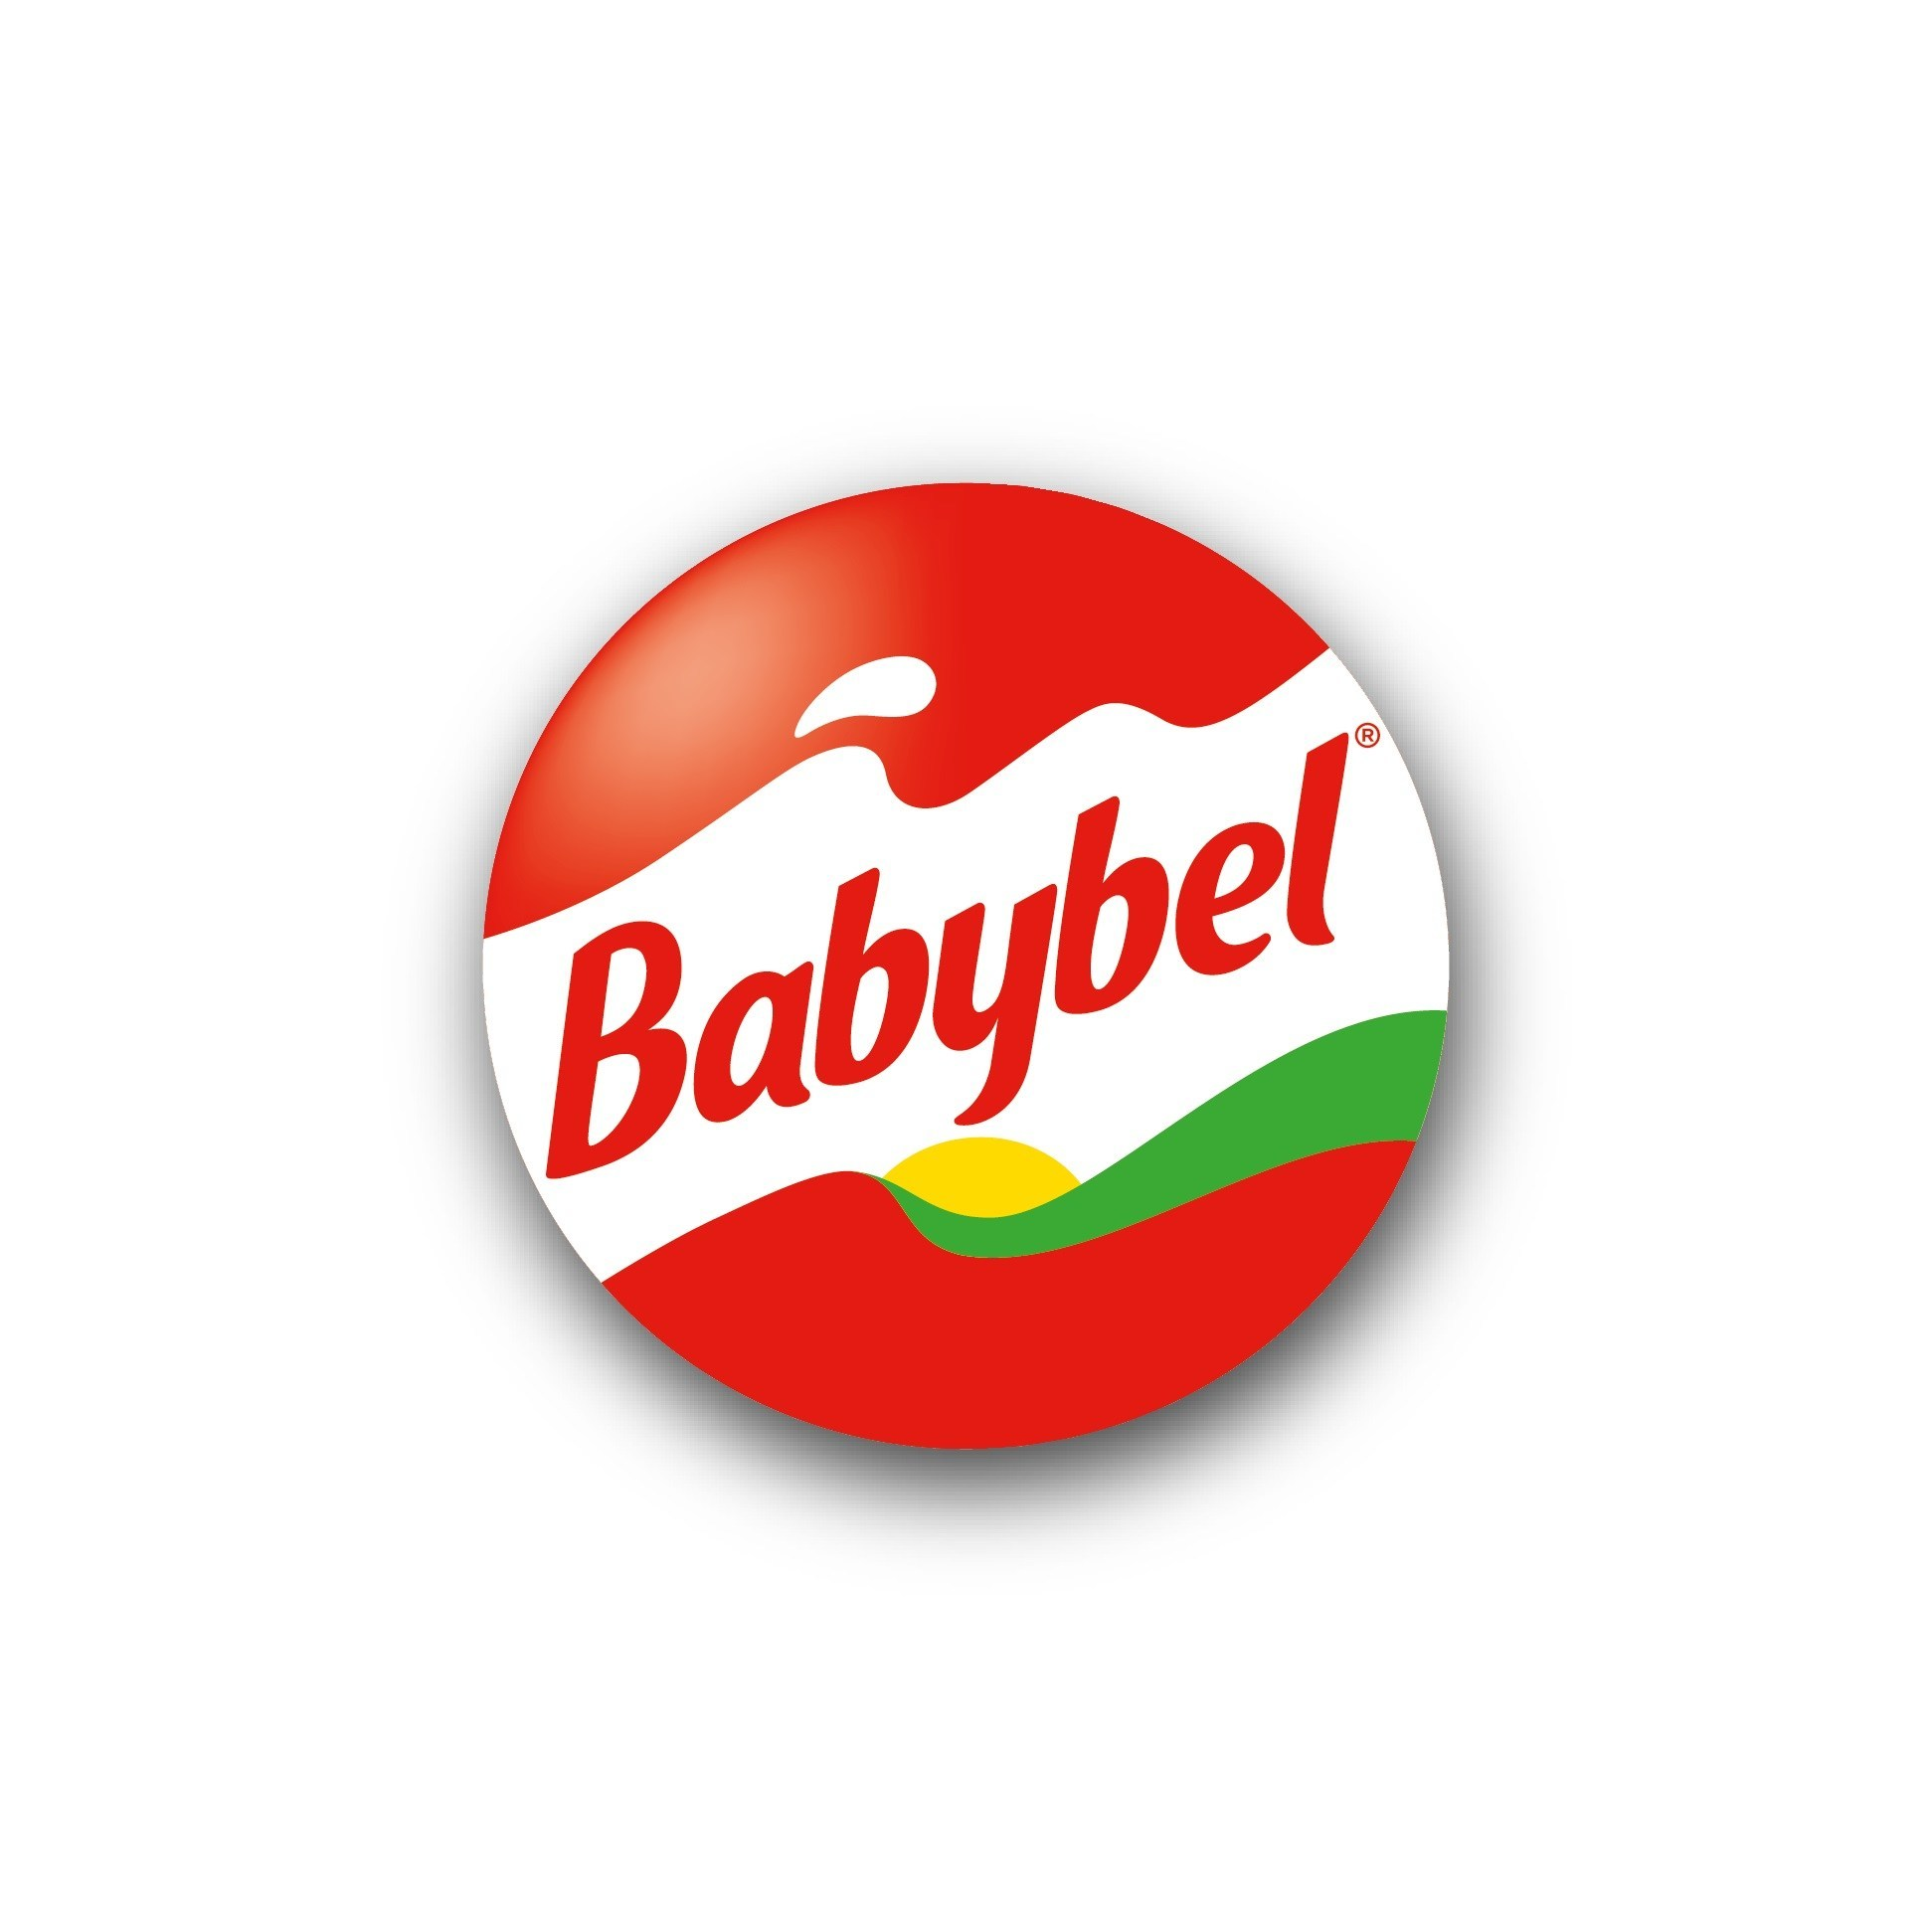 Move Over String Cheese, NEW Babybel® Mini Rolls Deliver on the Fun Snacking Experience Kids Crave